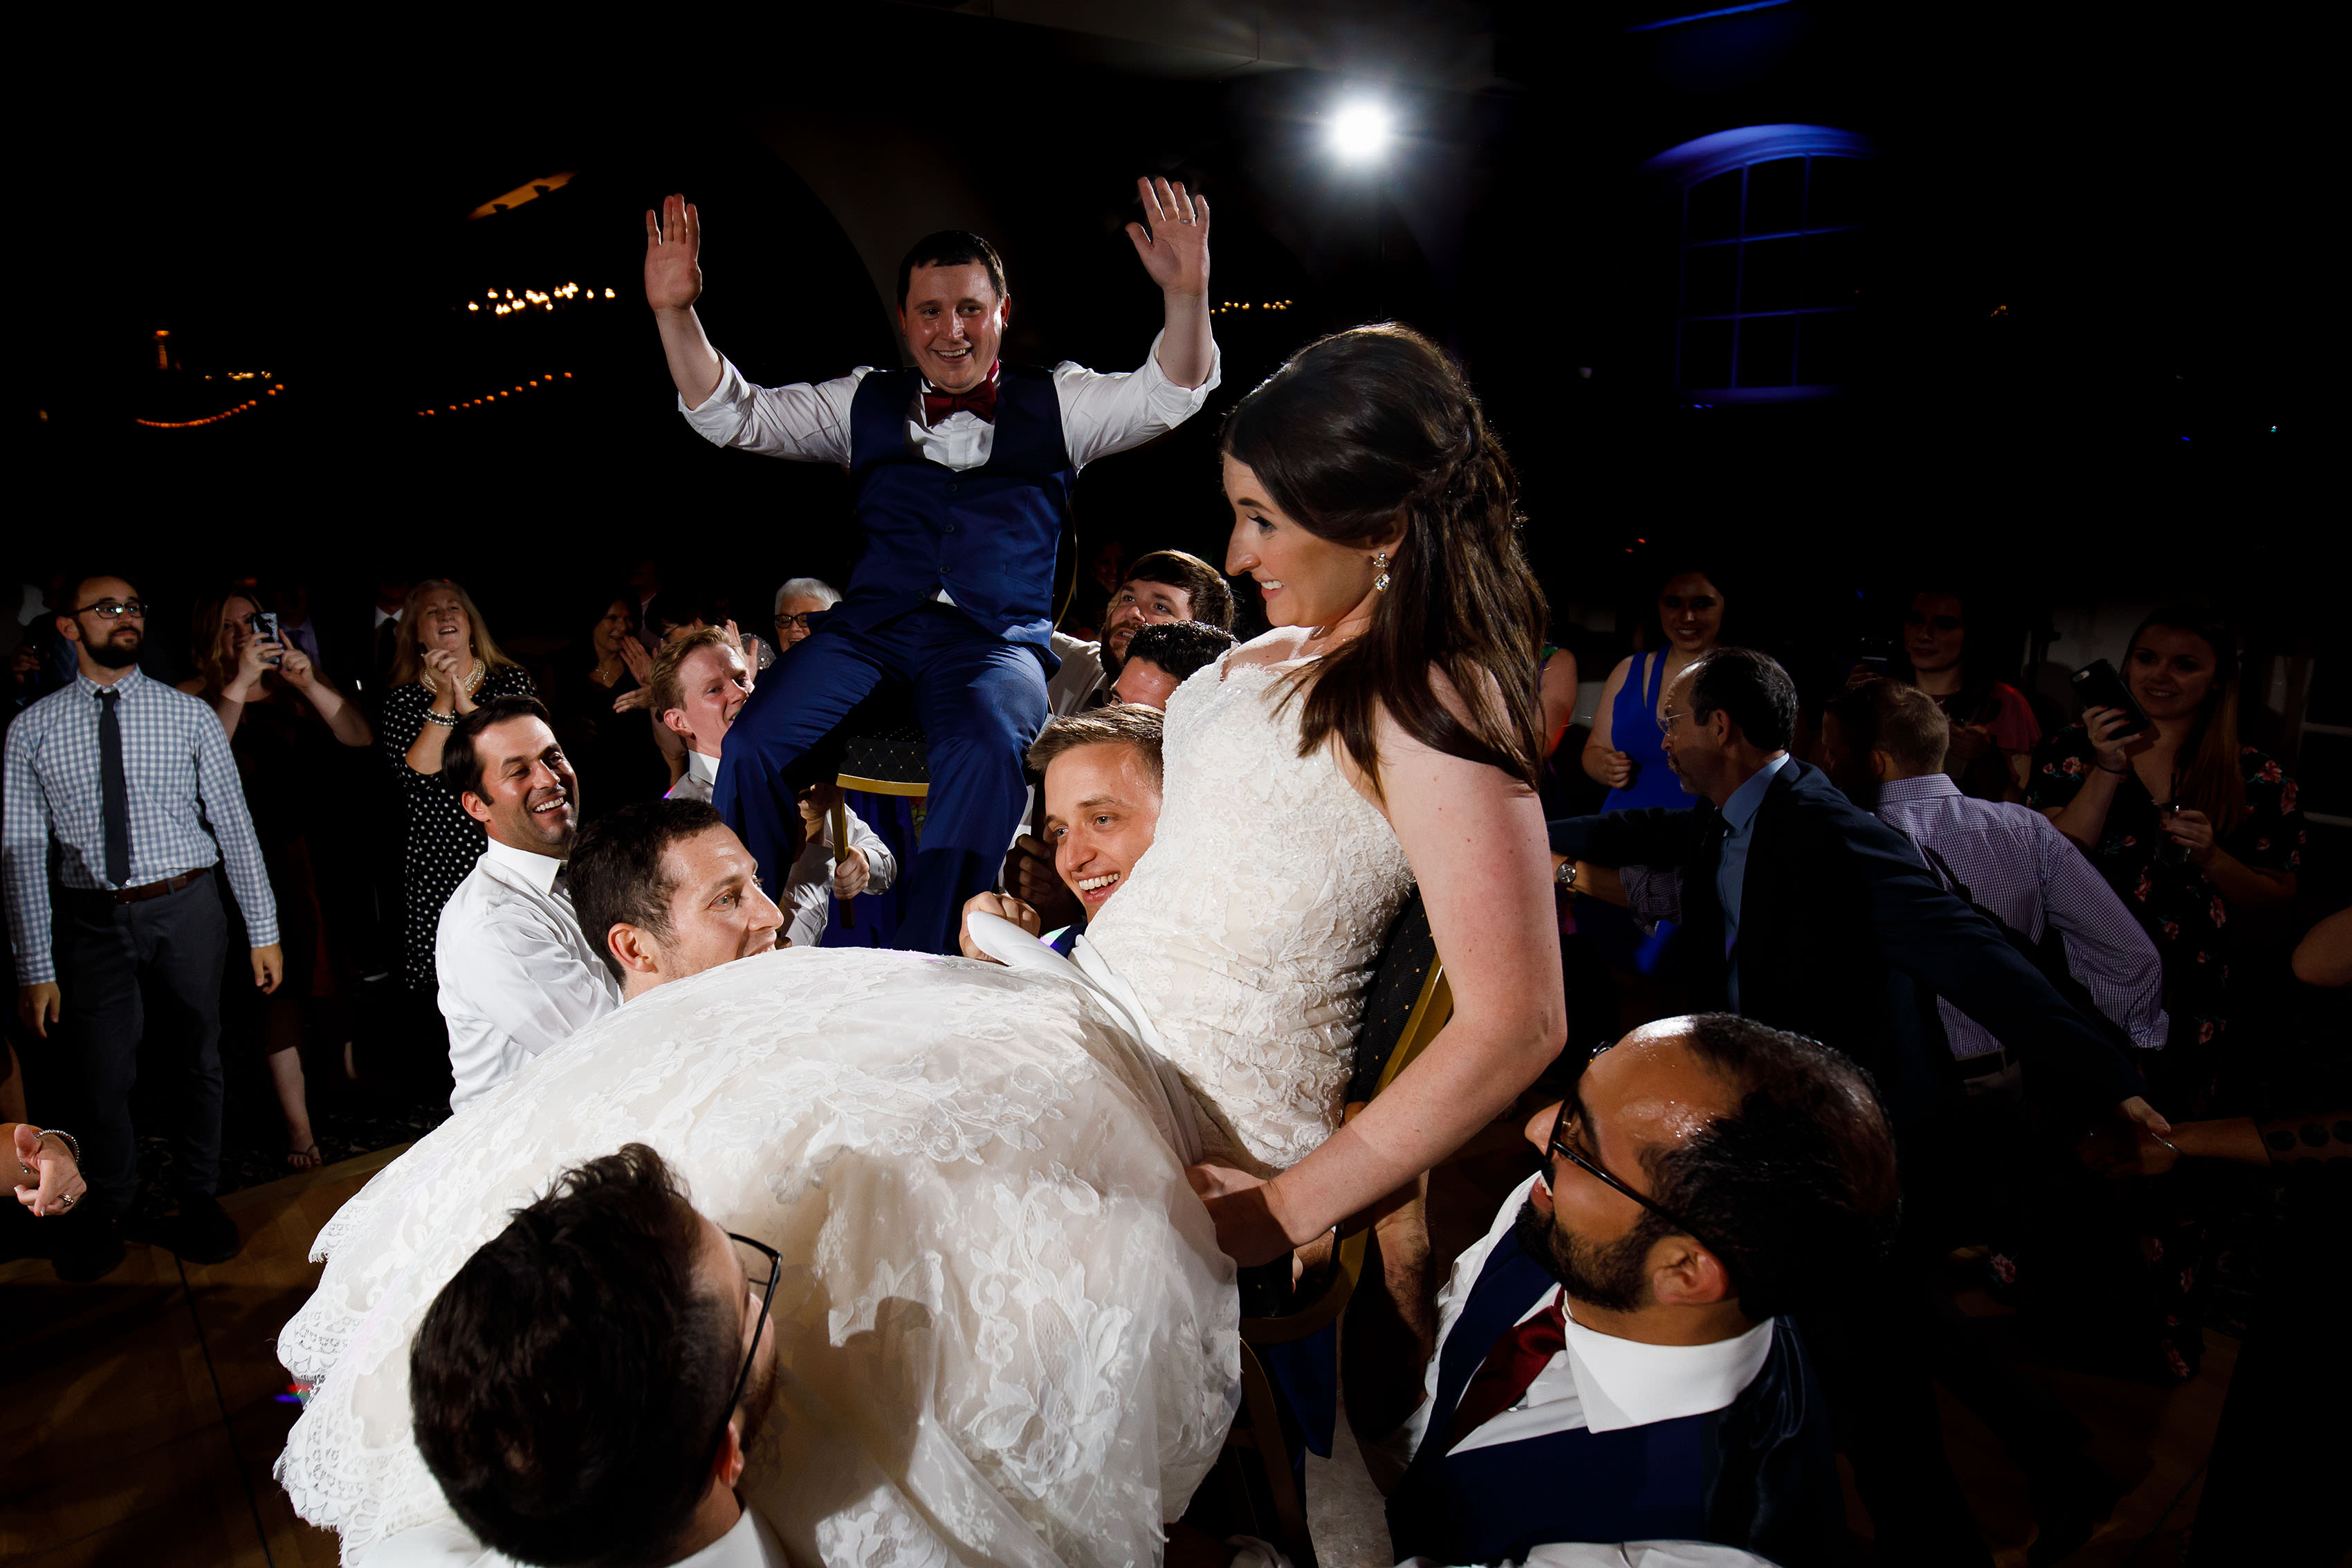 The bride and groom during the hora at Ravisloe Country Club